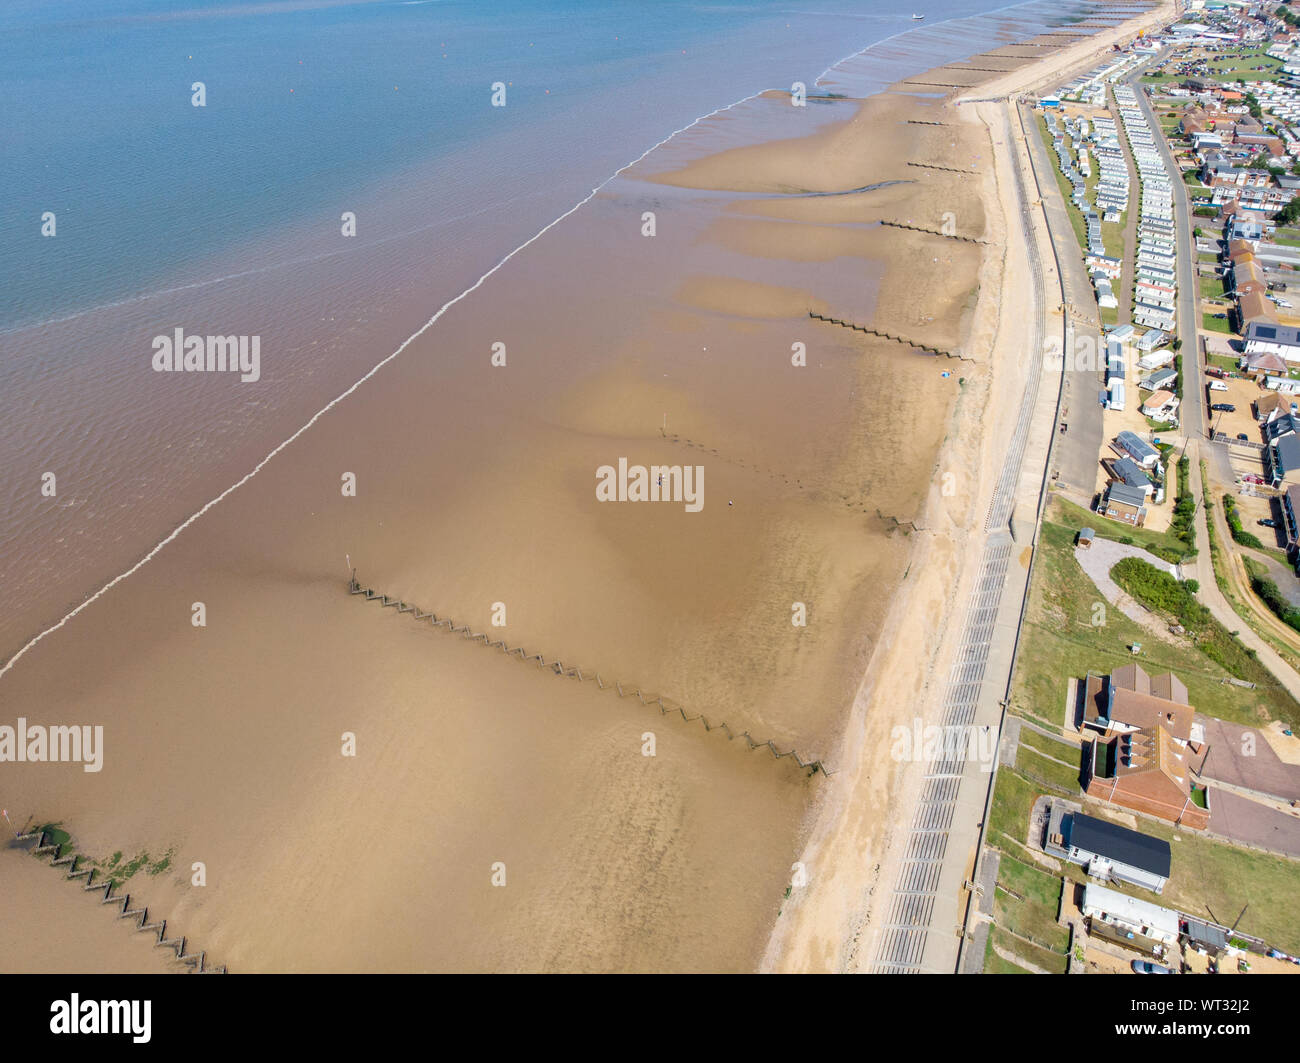 Aerial photo of the British seaside town of Hunstanton in Norfolk showing the coastal area and beach and alsop the caravan holiday park. Stock Photo